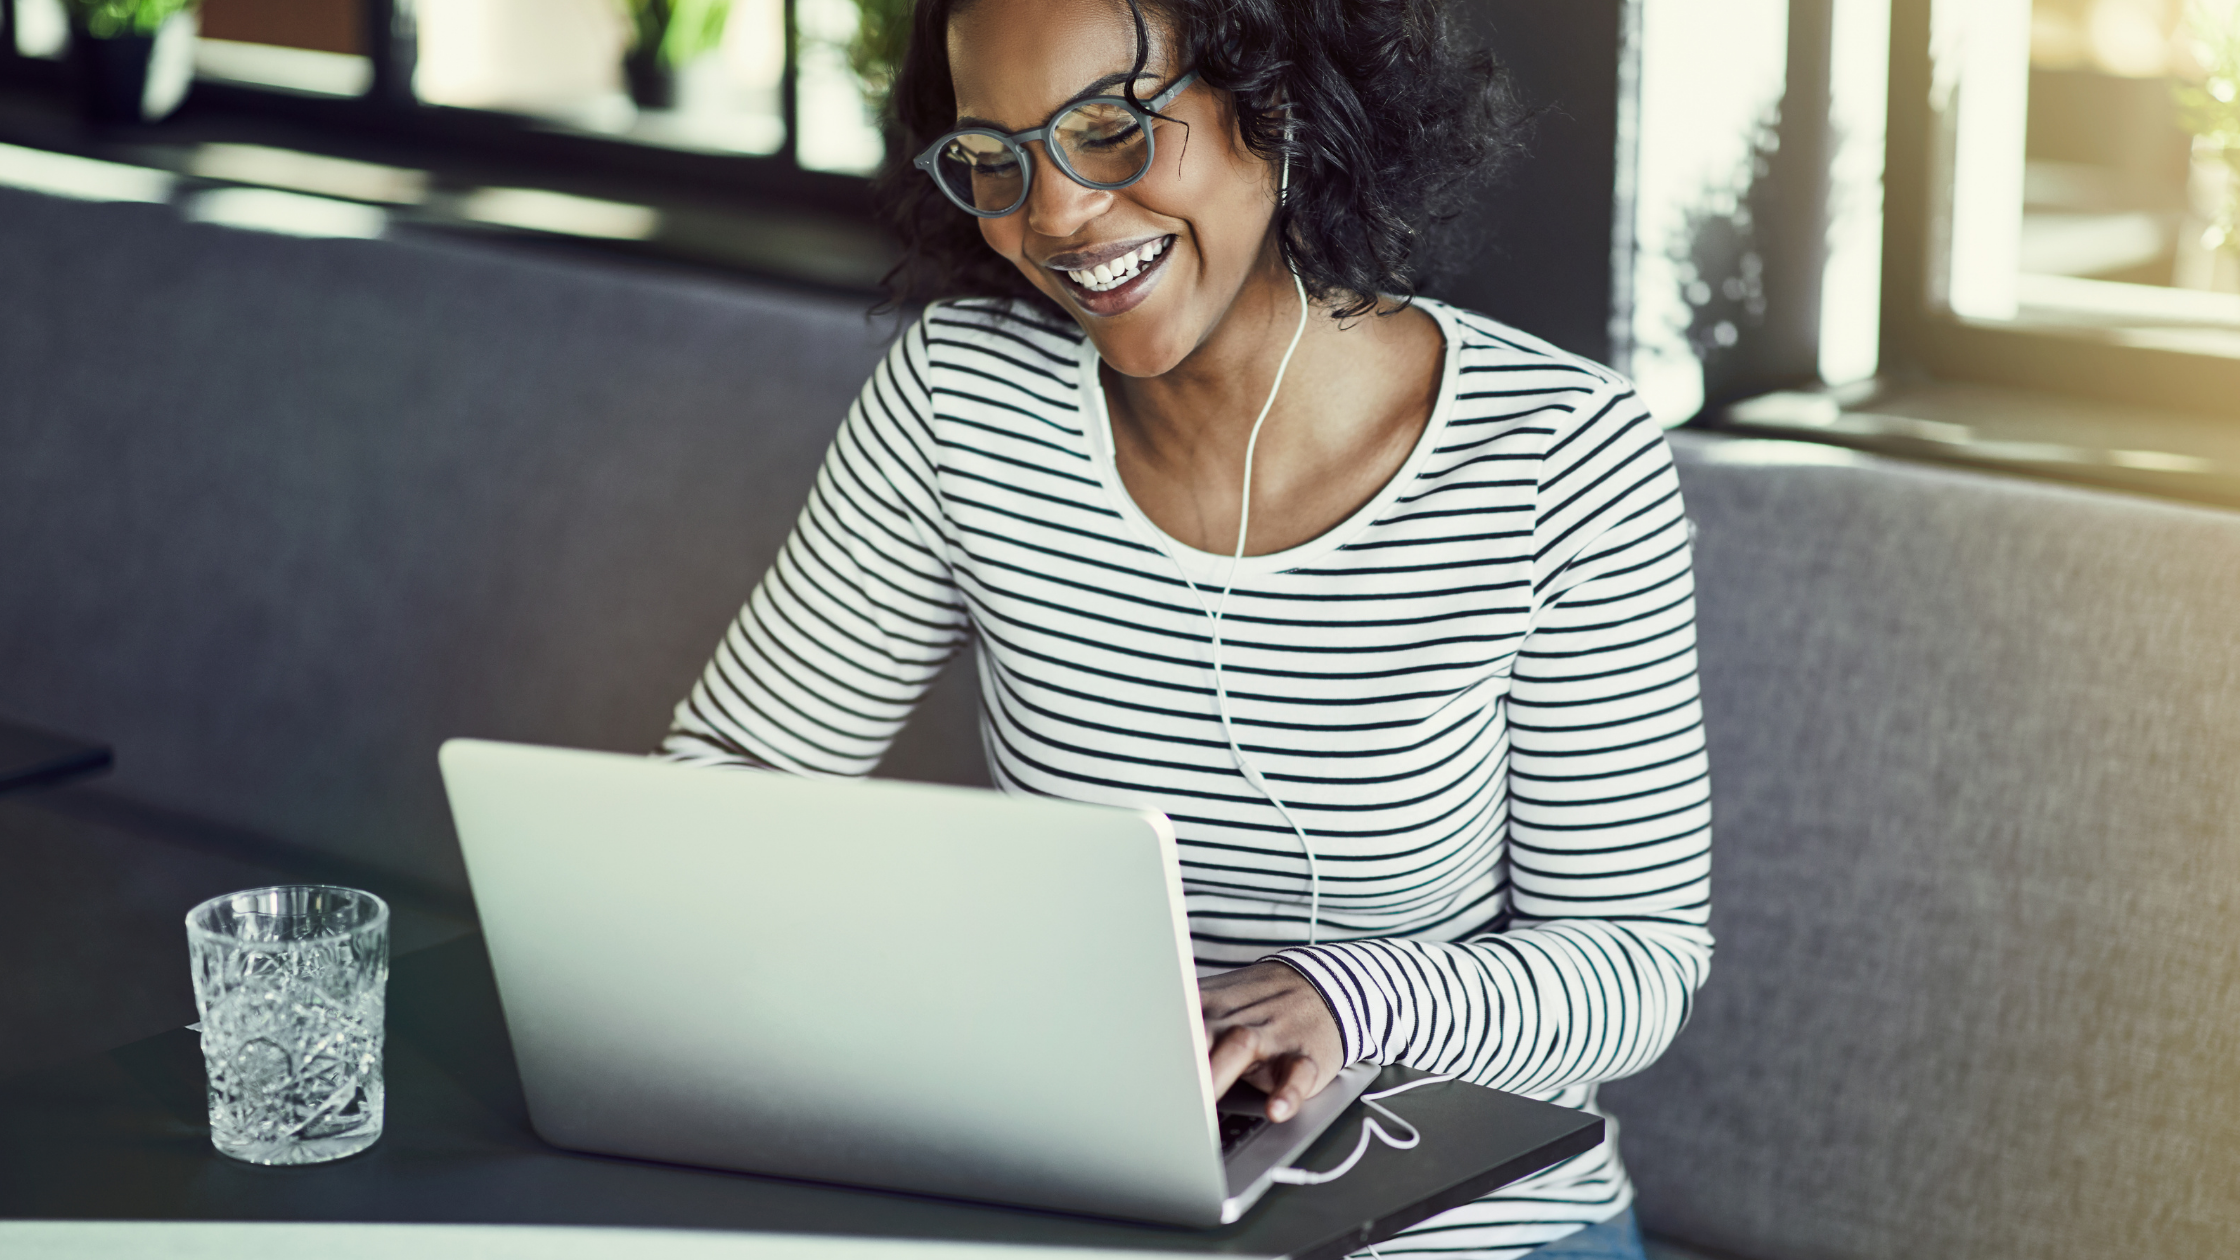 woman sitting on computer smiling